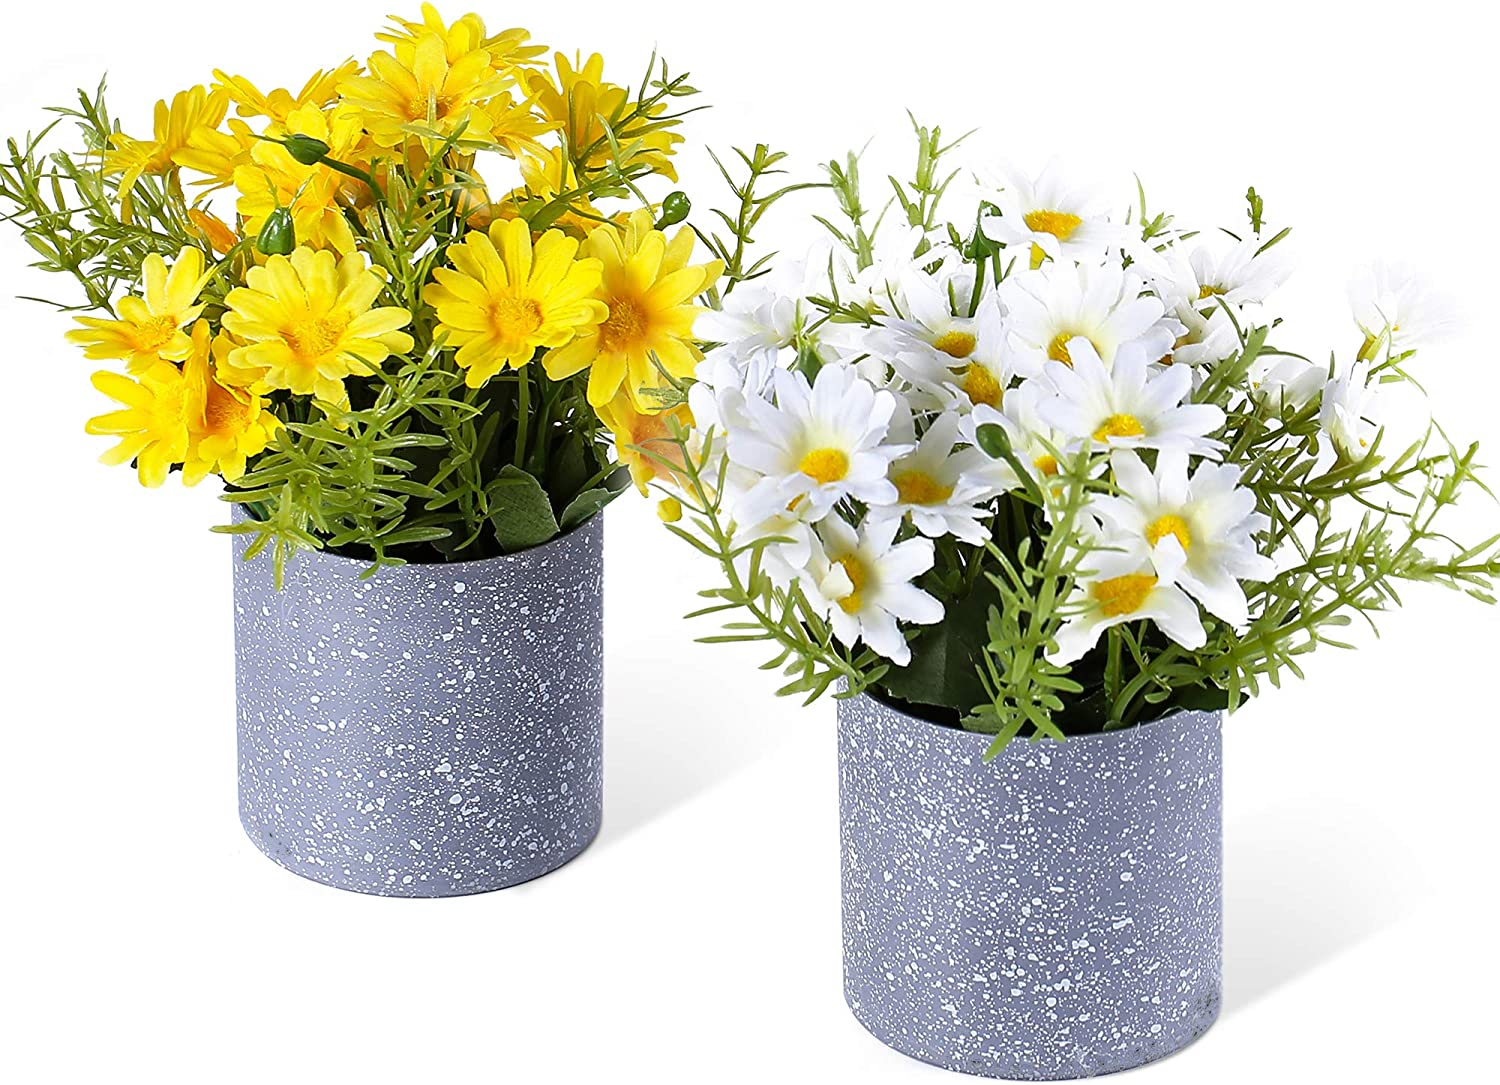 LUEUR Set of 2 Artificial Daisy Flowers in Pots Artificial Gerber Daisies Fake Sunflower Potted Plants Arrangement for Indoor Office Tabletop Decor Wedding Centerpiece Decoration Yellow & White